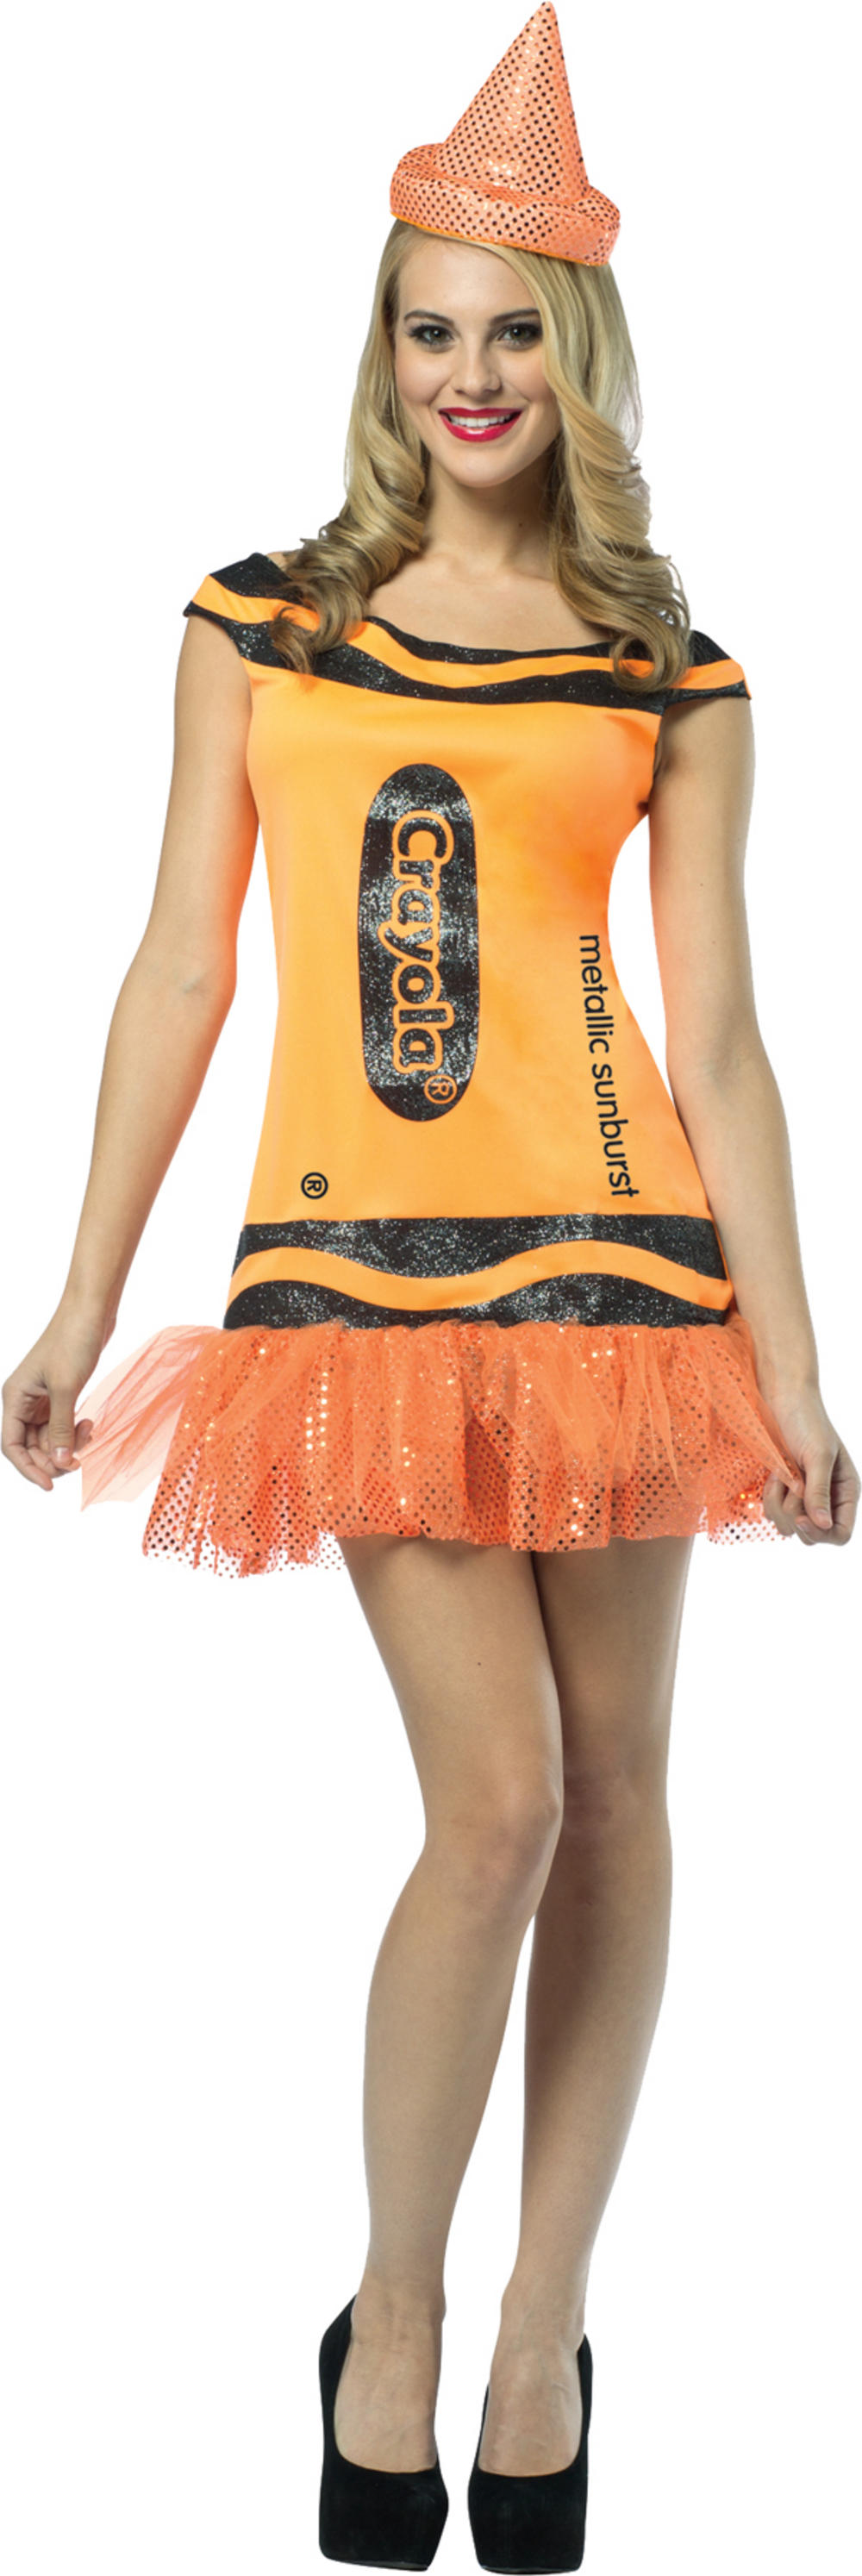 Sunburst Orange Crayola Glitter Dress Ladies Costume